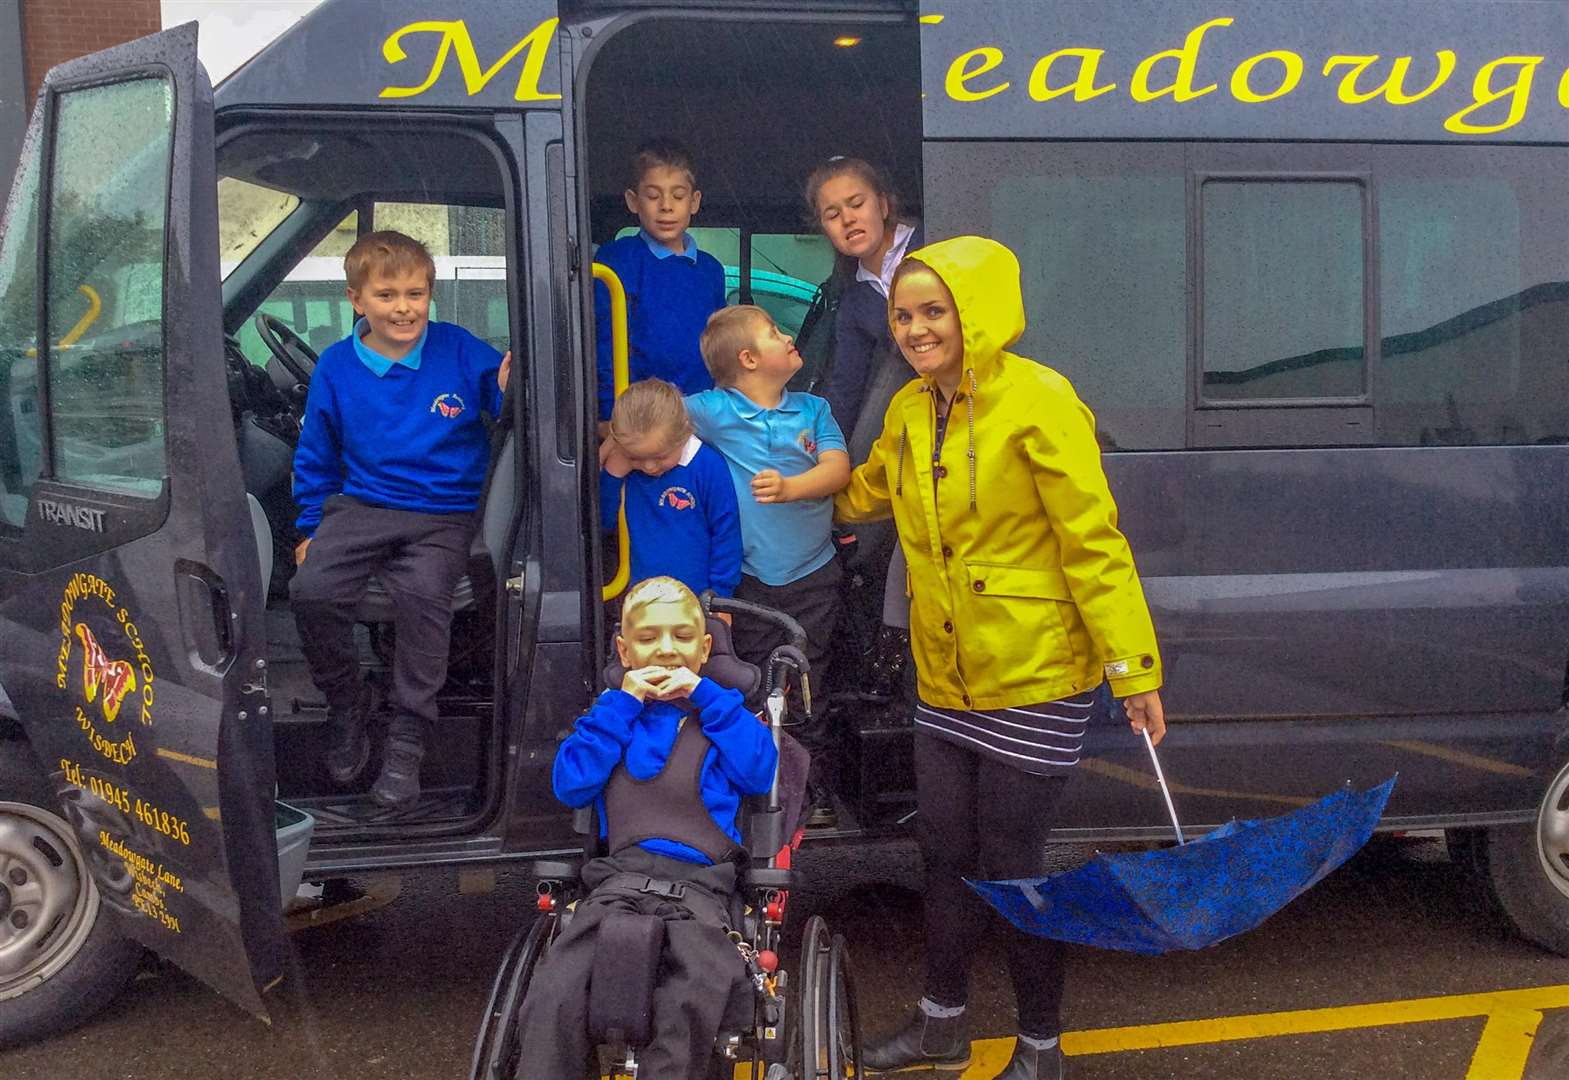 Meadowgate Academy in Wisbech need to raise £17,000 towards a new mini-bus so pupils can enjoy trips out together